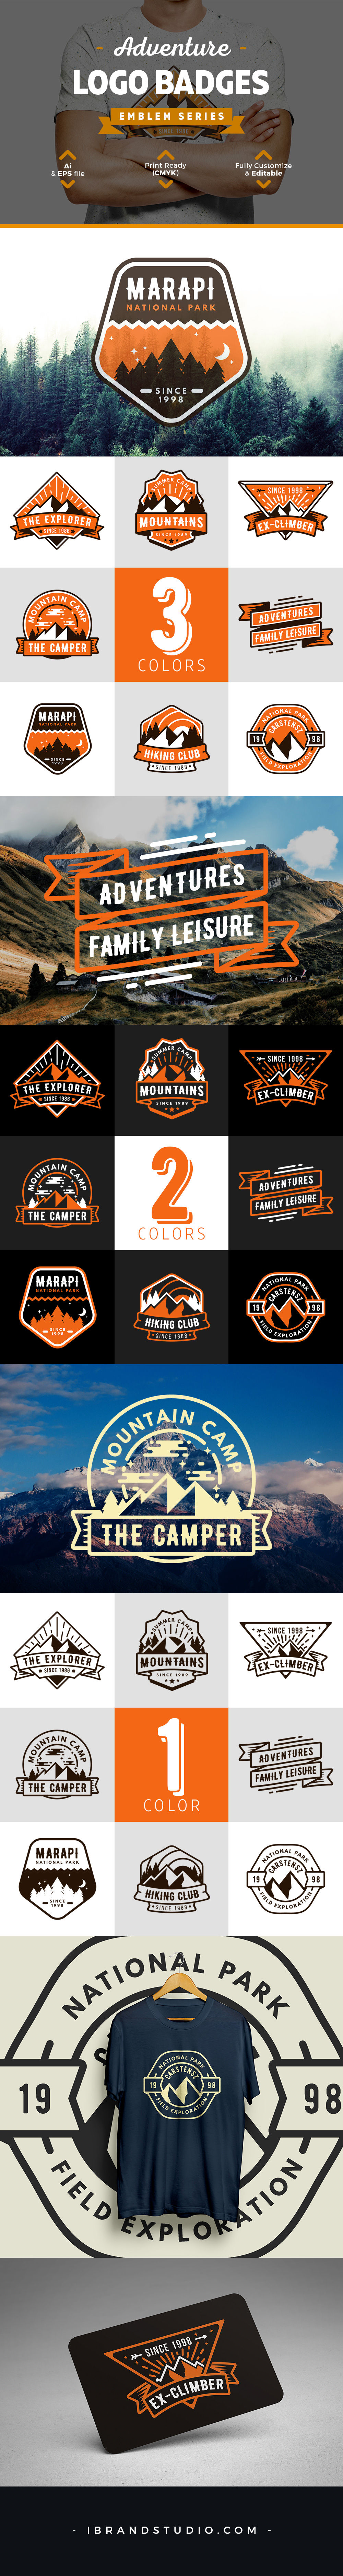 Free 8 Adventure Logos and Badges